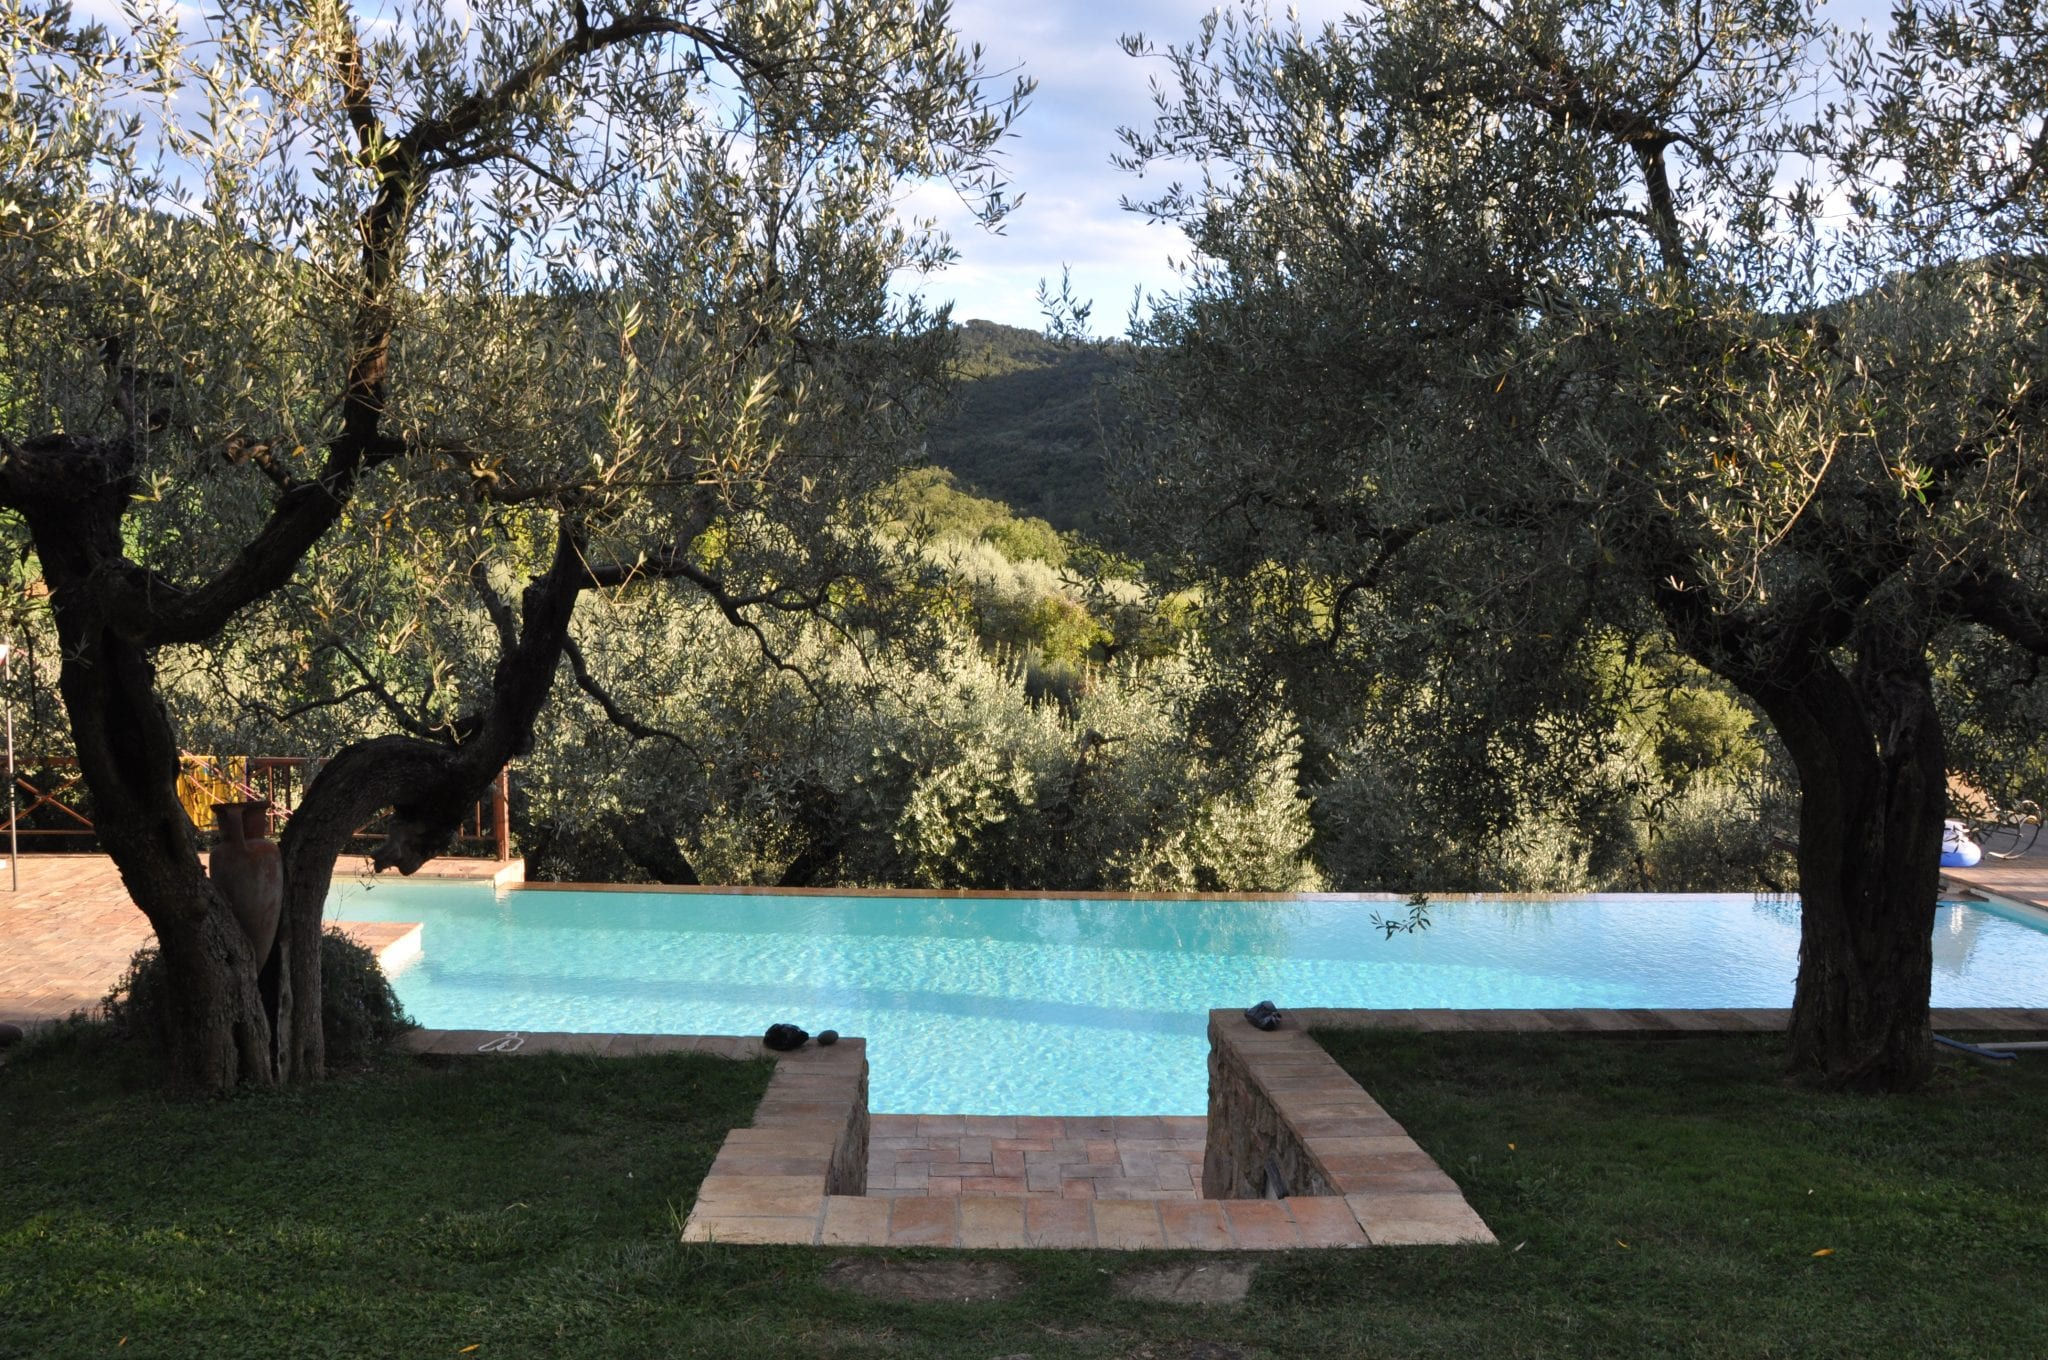 Some agriturismi have all the luxurious amenities